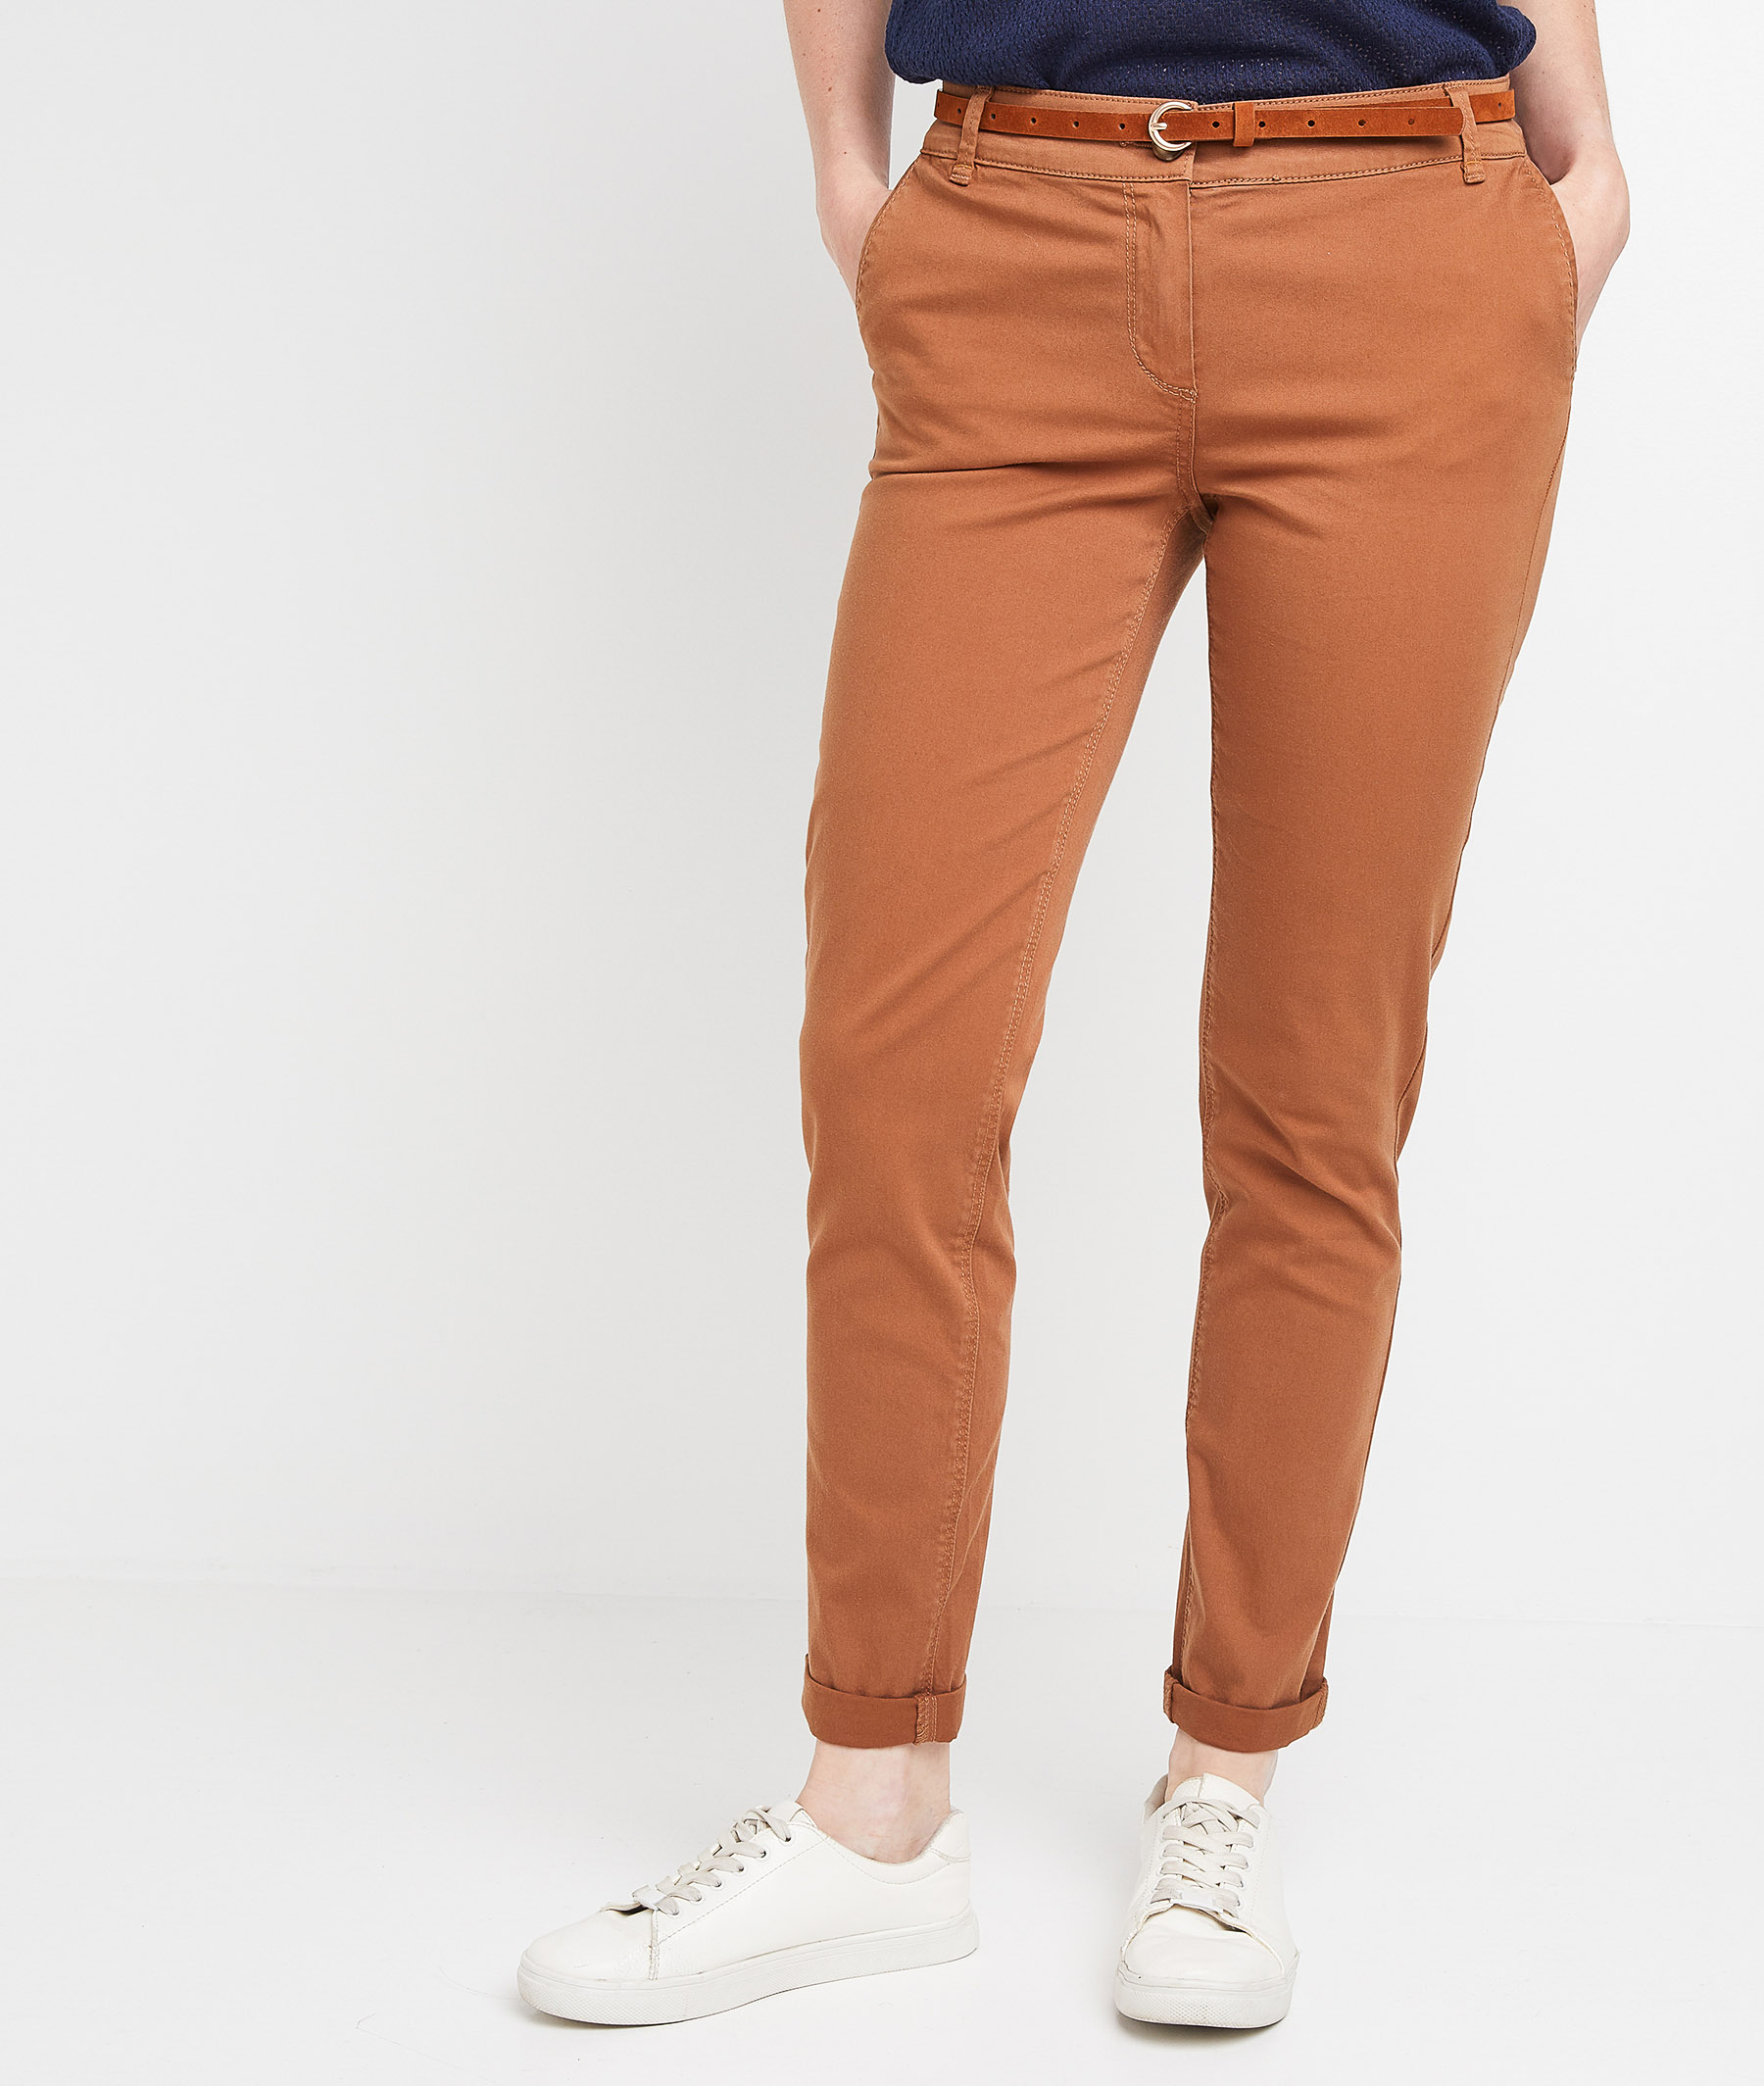 Chino camel femme CAMEL